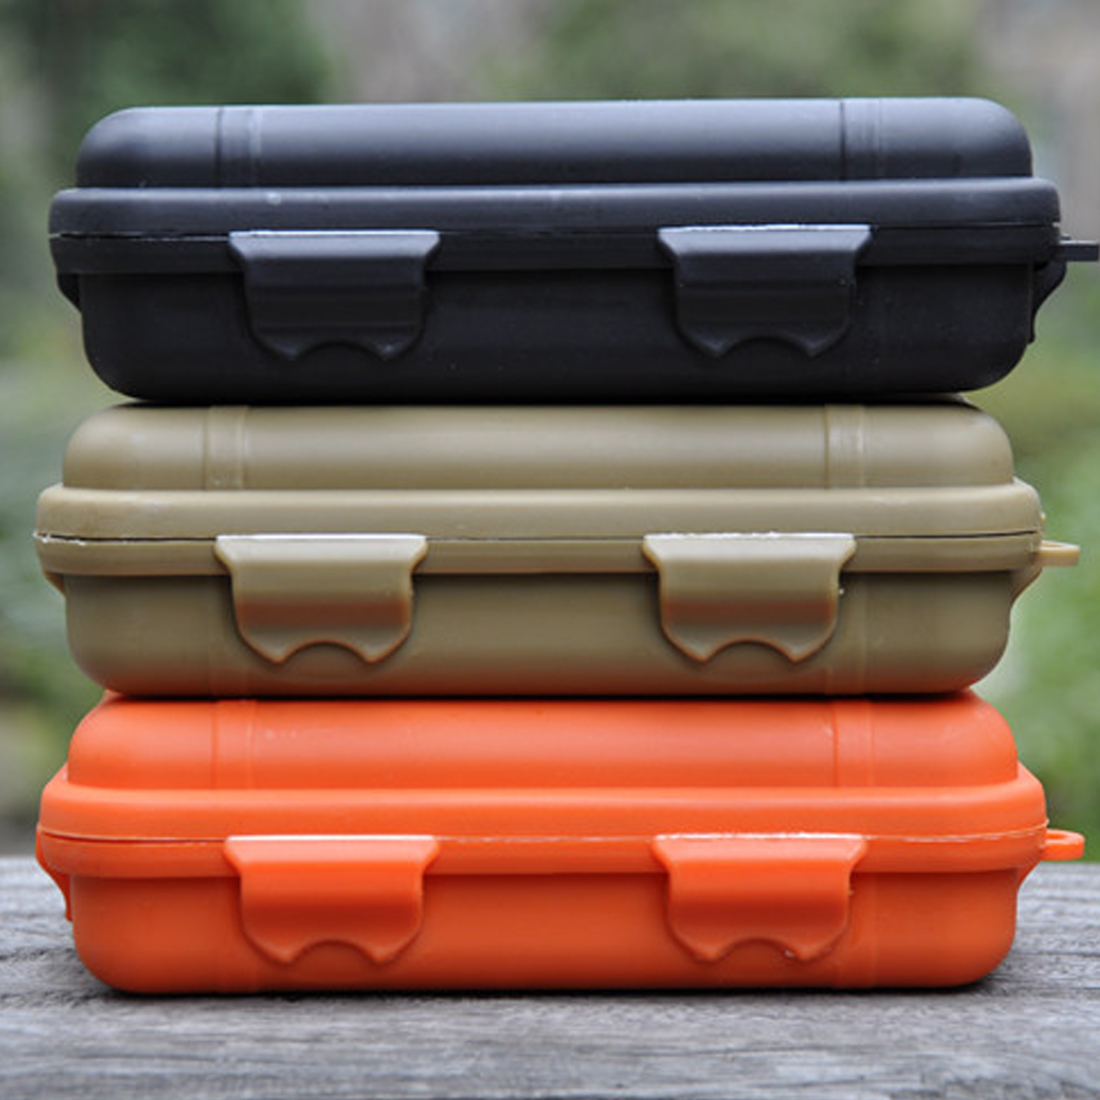 1pcs Outdoor Shockproof Waterproof Plastic Box Storage Case Airtight Survival Box Carry Camping Tackle Tool Container